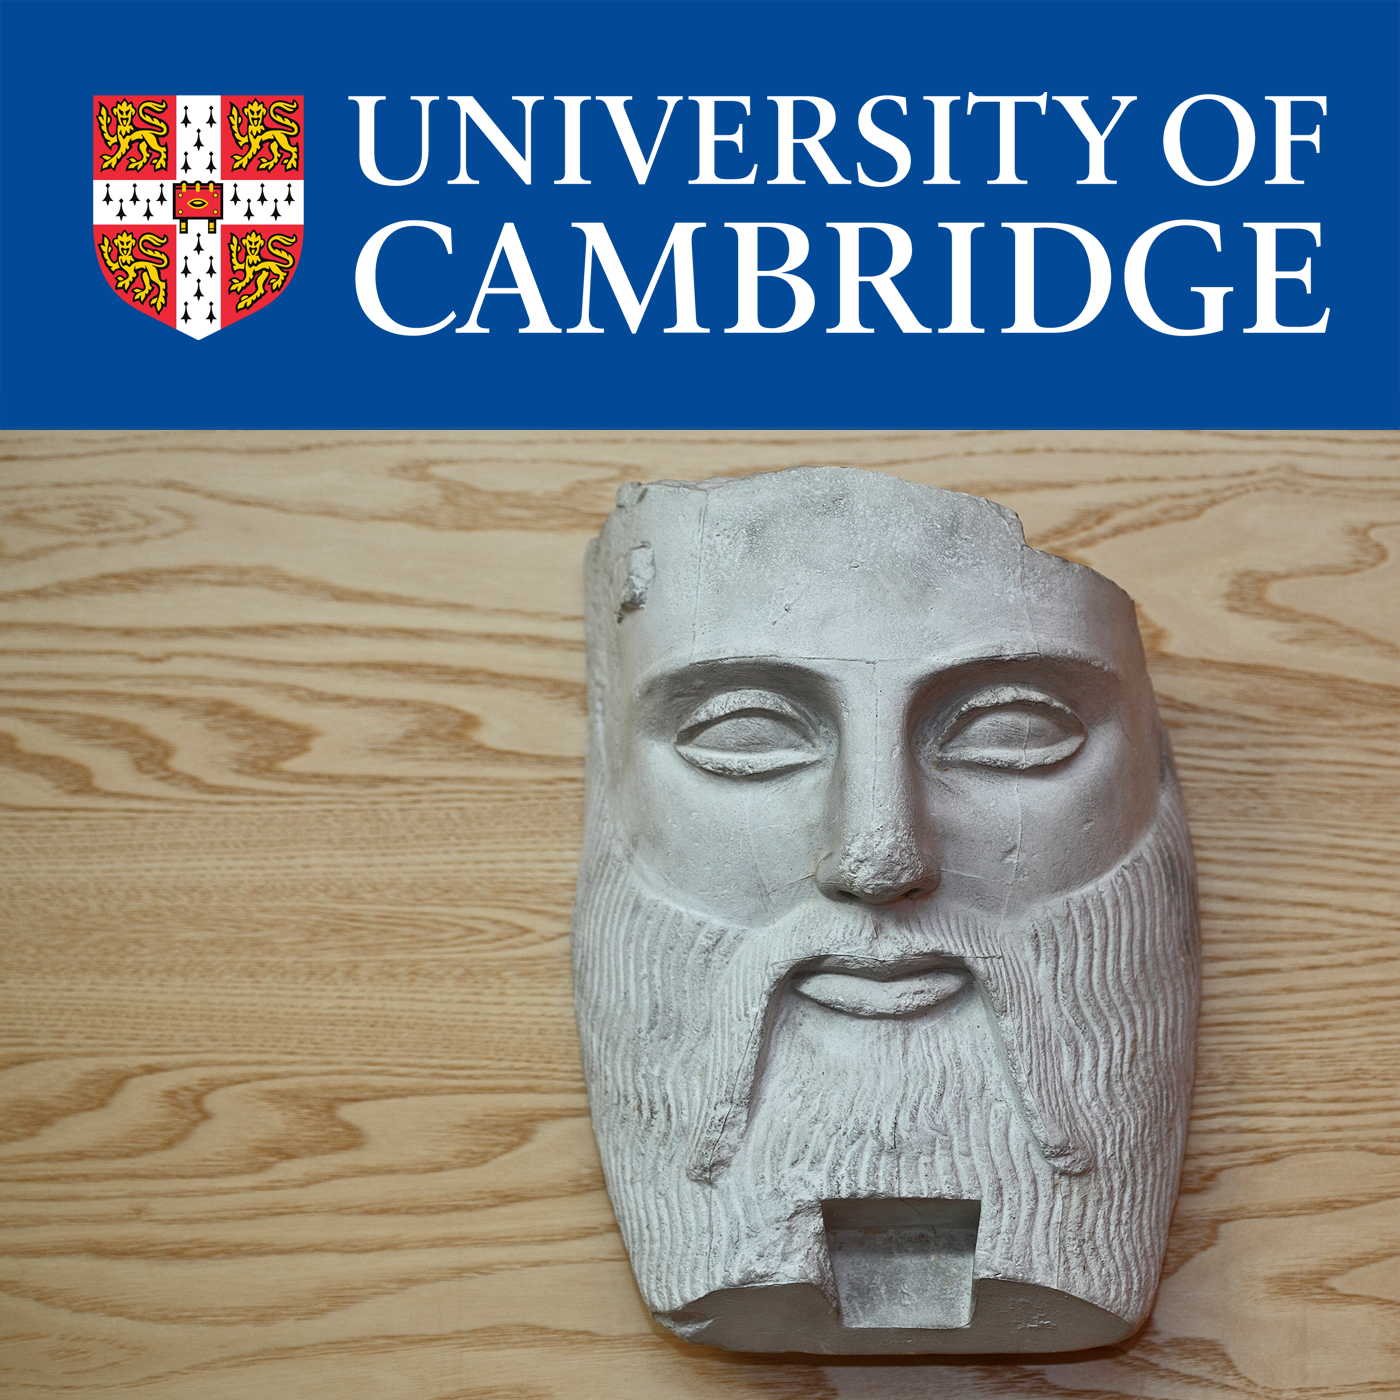 Aspects of Philosophy at Cambridge's image